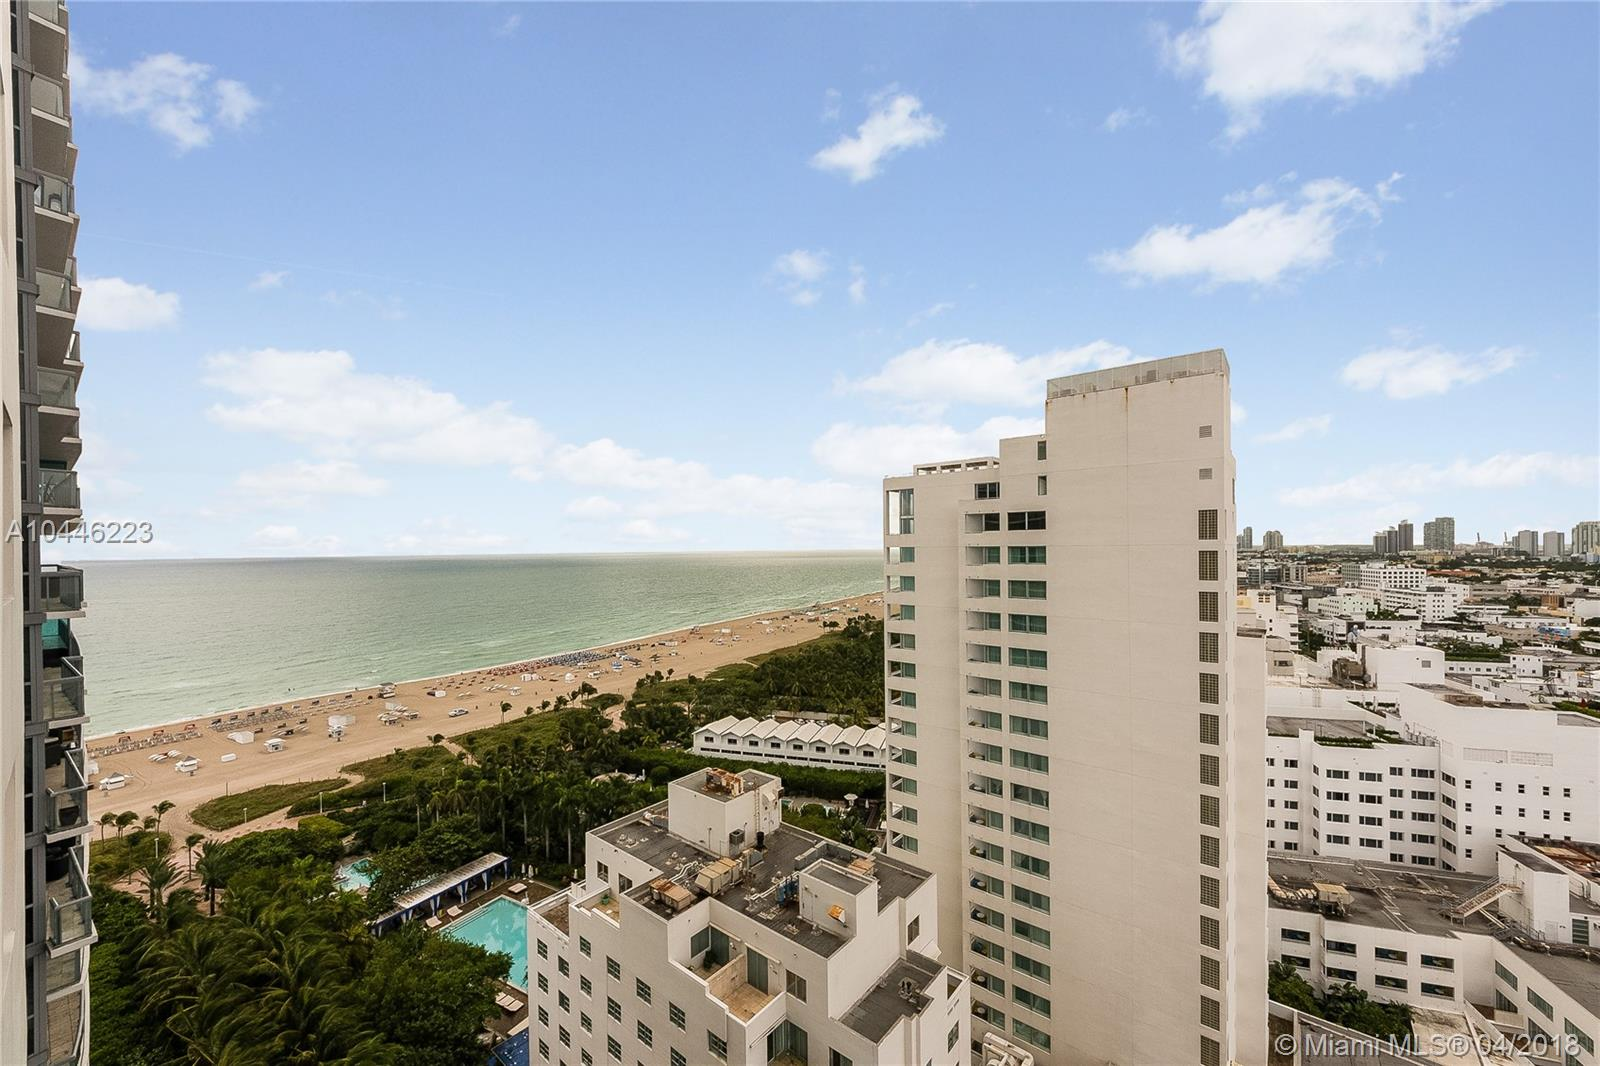 Stunning 2 bedroom with ocean & city views.  Enjoy both sunrise and sunsets from this corner unit.  Designed by famed designer Debra Moris, 5 star hotel amenities include; fine dining, 24 hour room service, gym, spa, maid service, concierge, 3 azure infinity edge pools, beach side and poolside waiter service.  Top of the line appliances, miele gaggenau, sub-zero.  Great income opportunity.